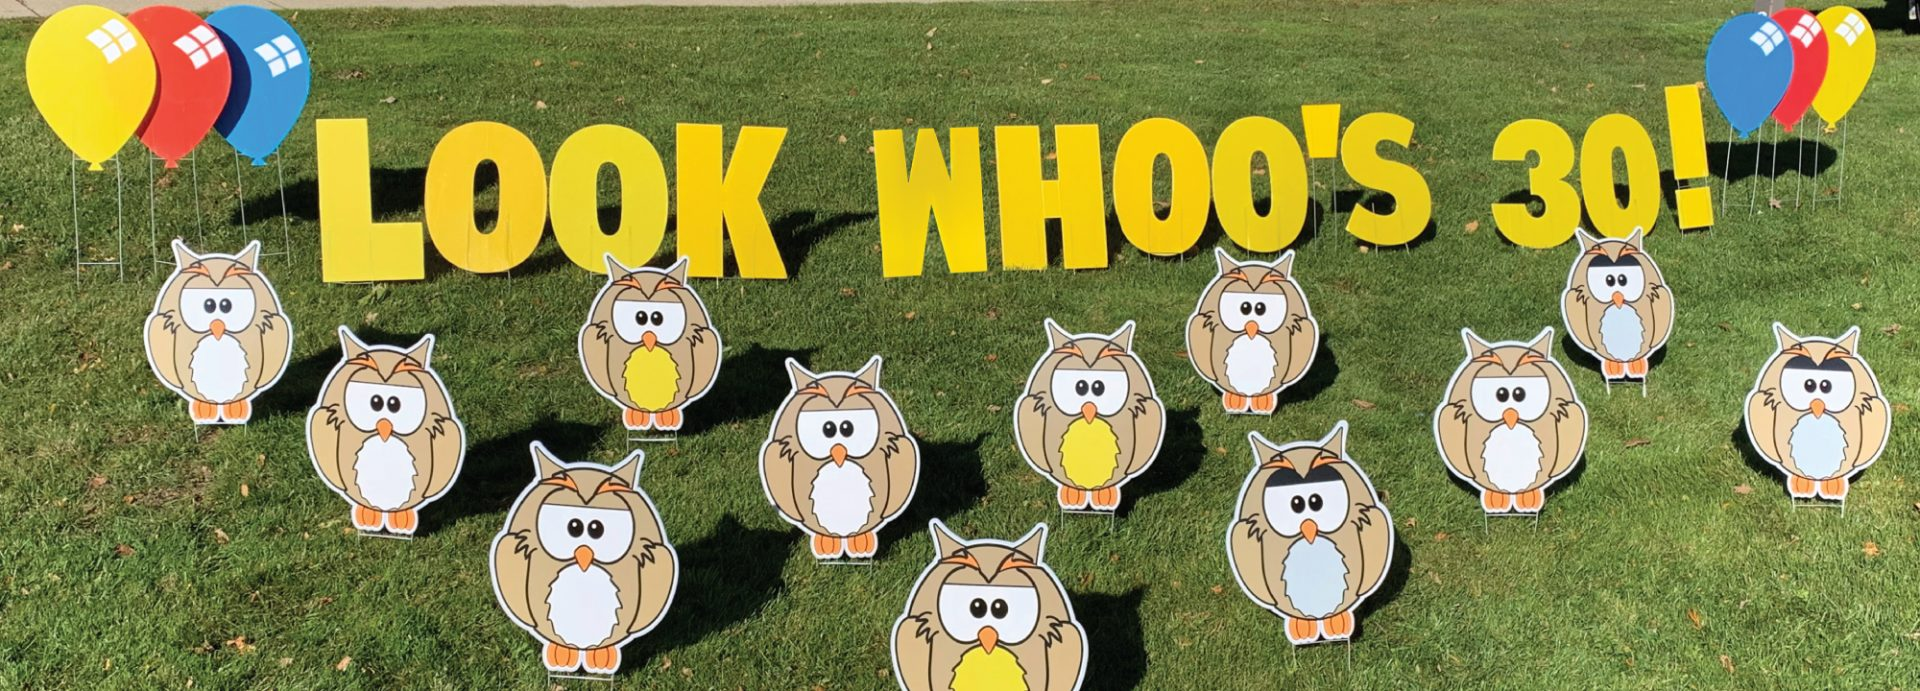 slider_owl_look_whoo's_animals_yard_greetings_yard_cards_happy_birthday_over_the_hill_lawn_signs